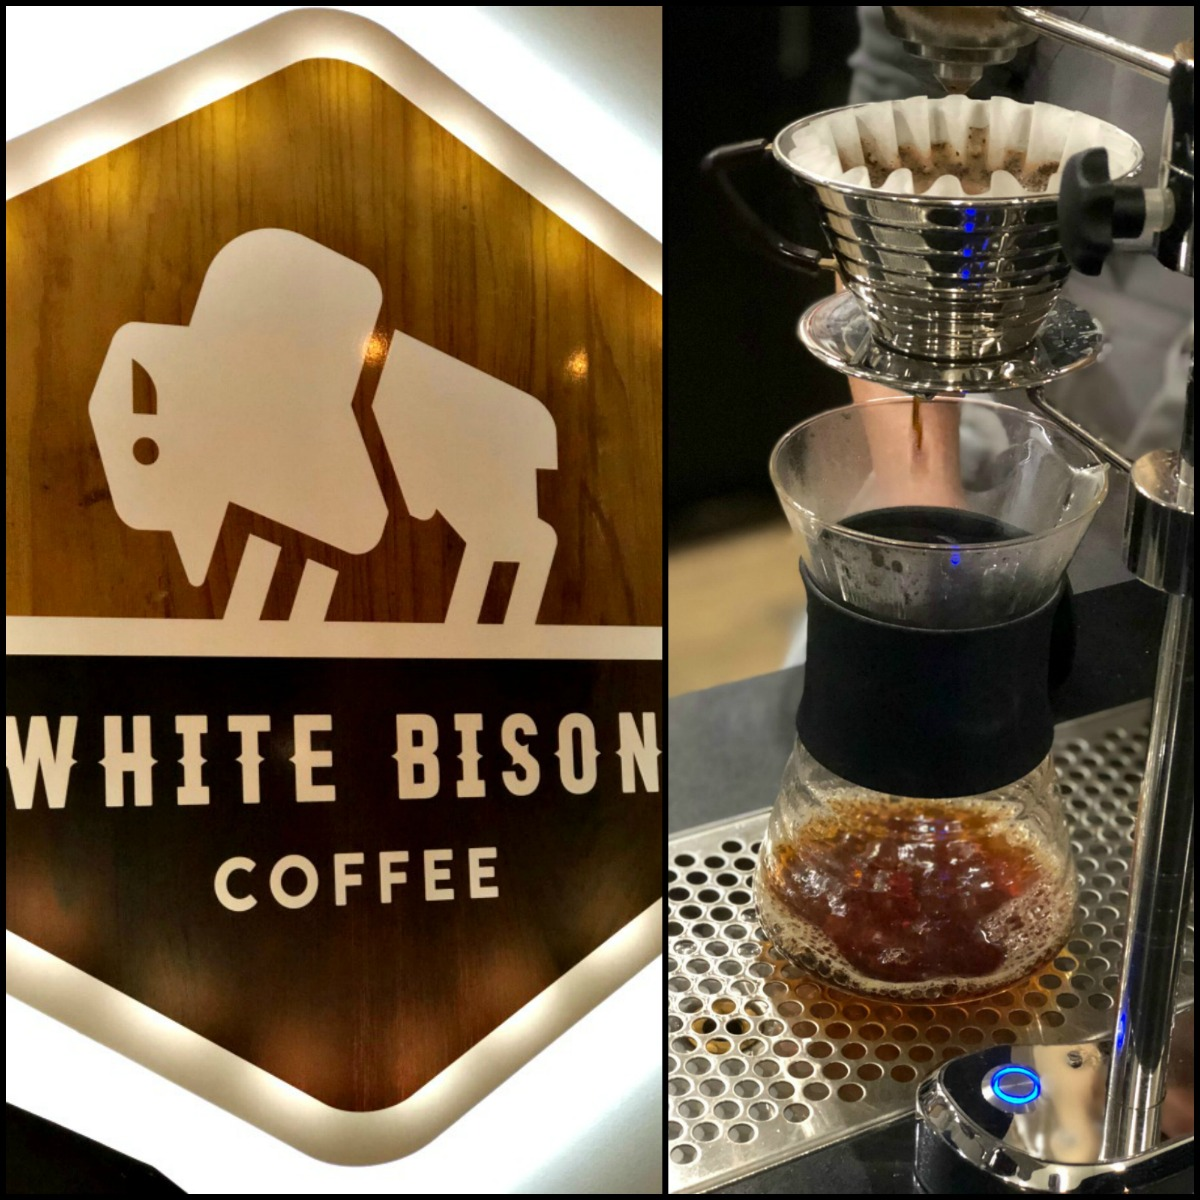 Quick Bites: White Bison Coffee from Spinach TIger